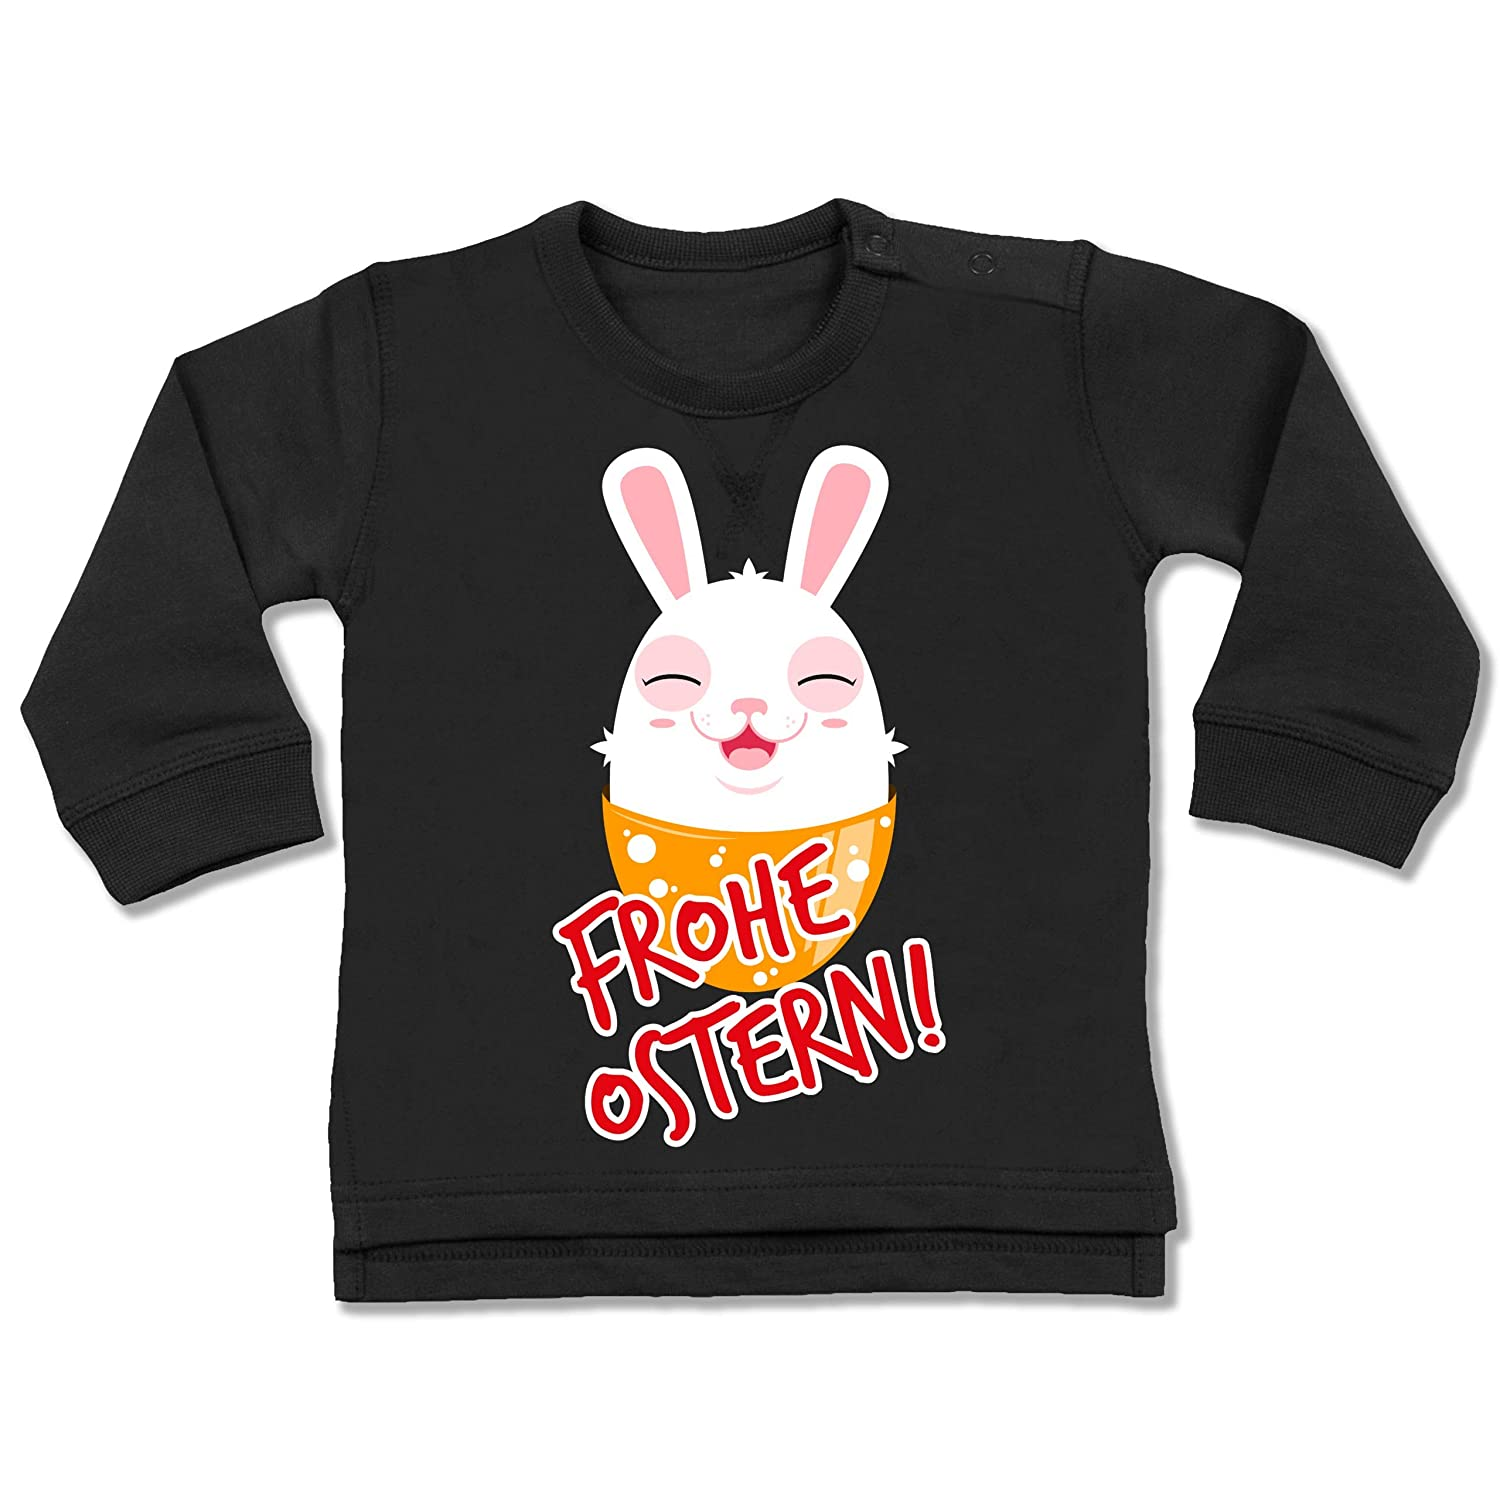 Frohe Ostern Osterhase Anl/ässe Baby Baby T-Shirt Langarm